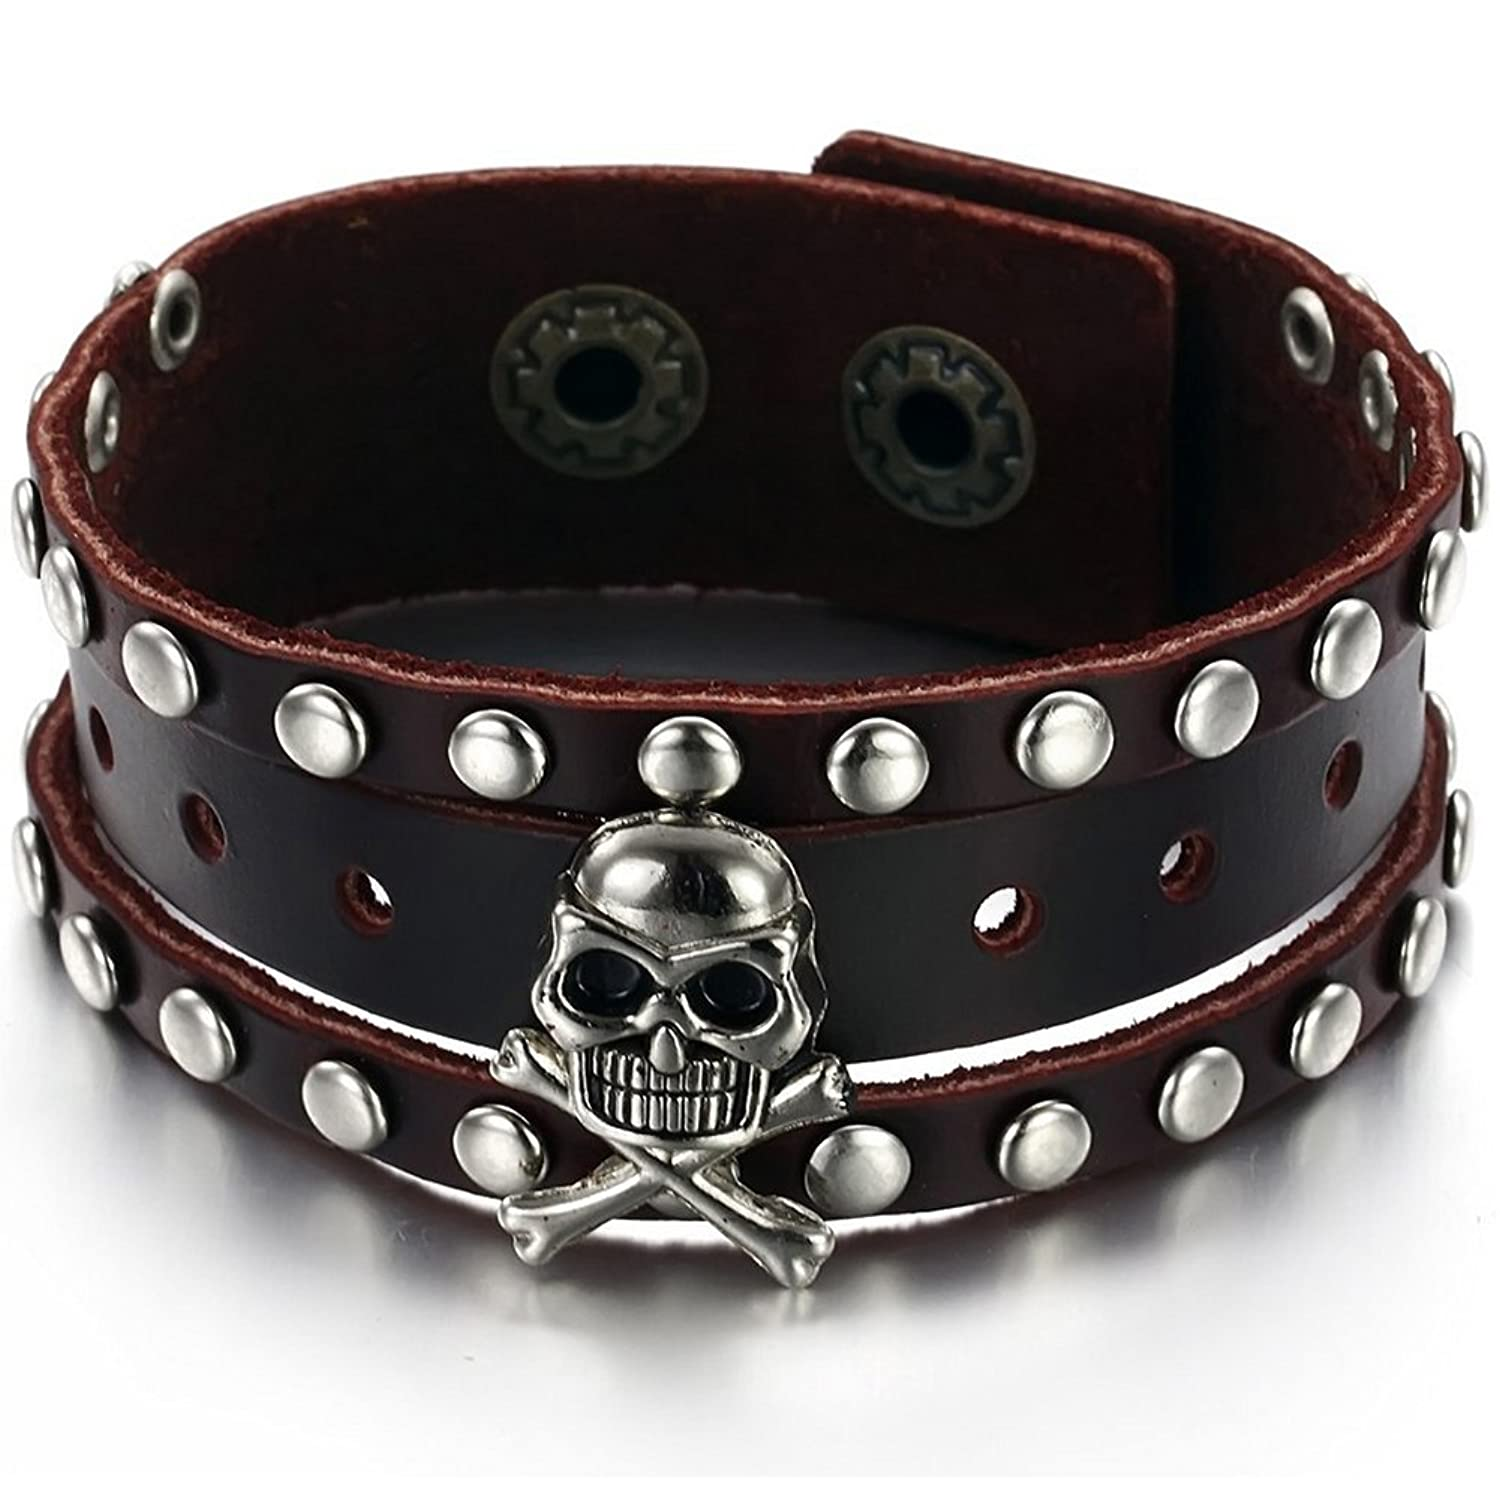 Pirate Black Leather Stainless Steel Skull Wristband Cuff